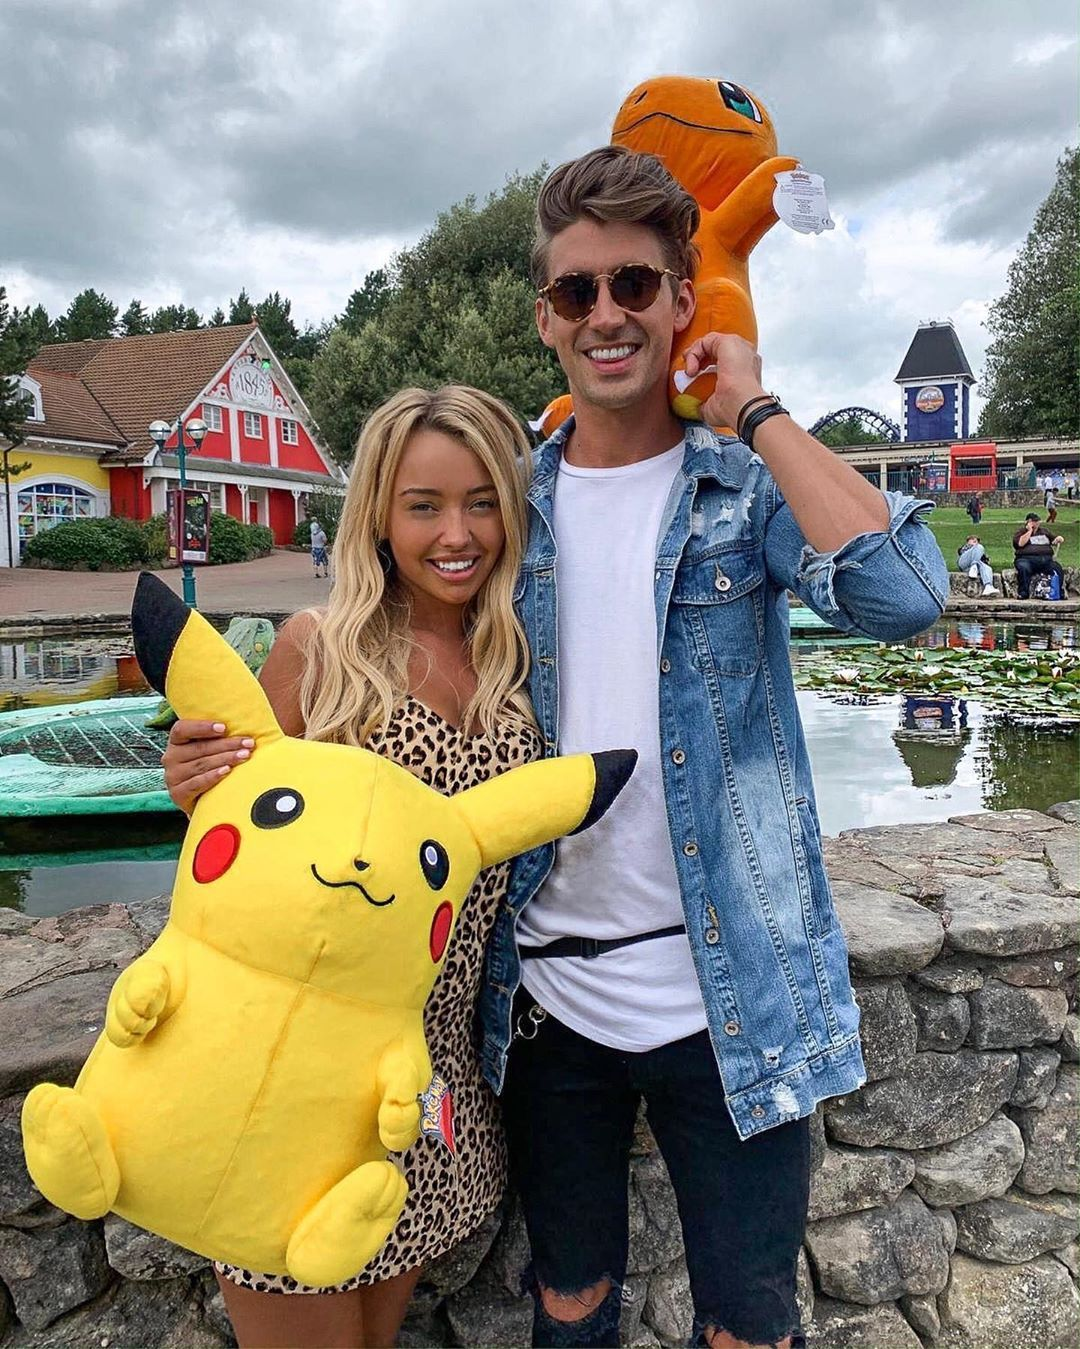 Image may contain: Love Island, Love Island gossip, news, rumours, latest, 2019, Chris, Harley, exclusive, date, official, Alton Towers, Tom, Levena, dinner, Human, Person, Sunglasses, Accessory, Accessories, Denim, Jeans, Pants, Apparel, Clothing